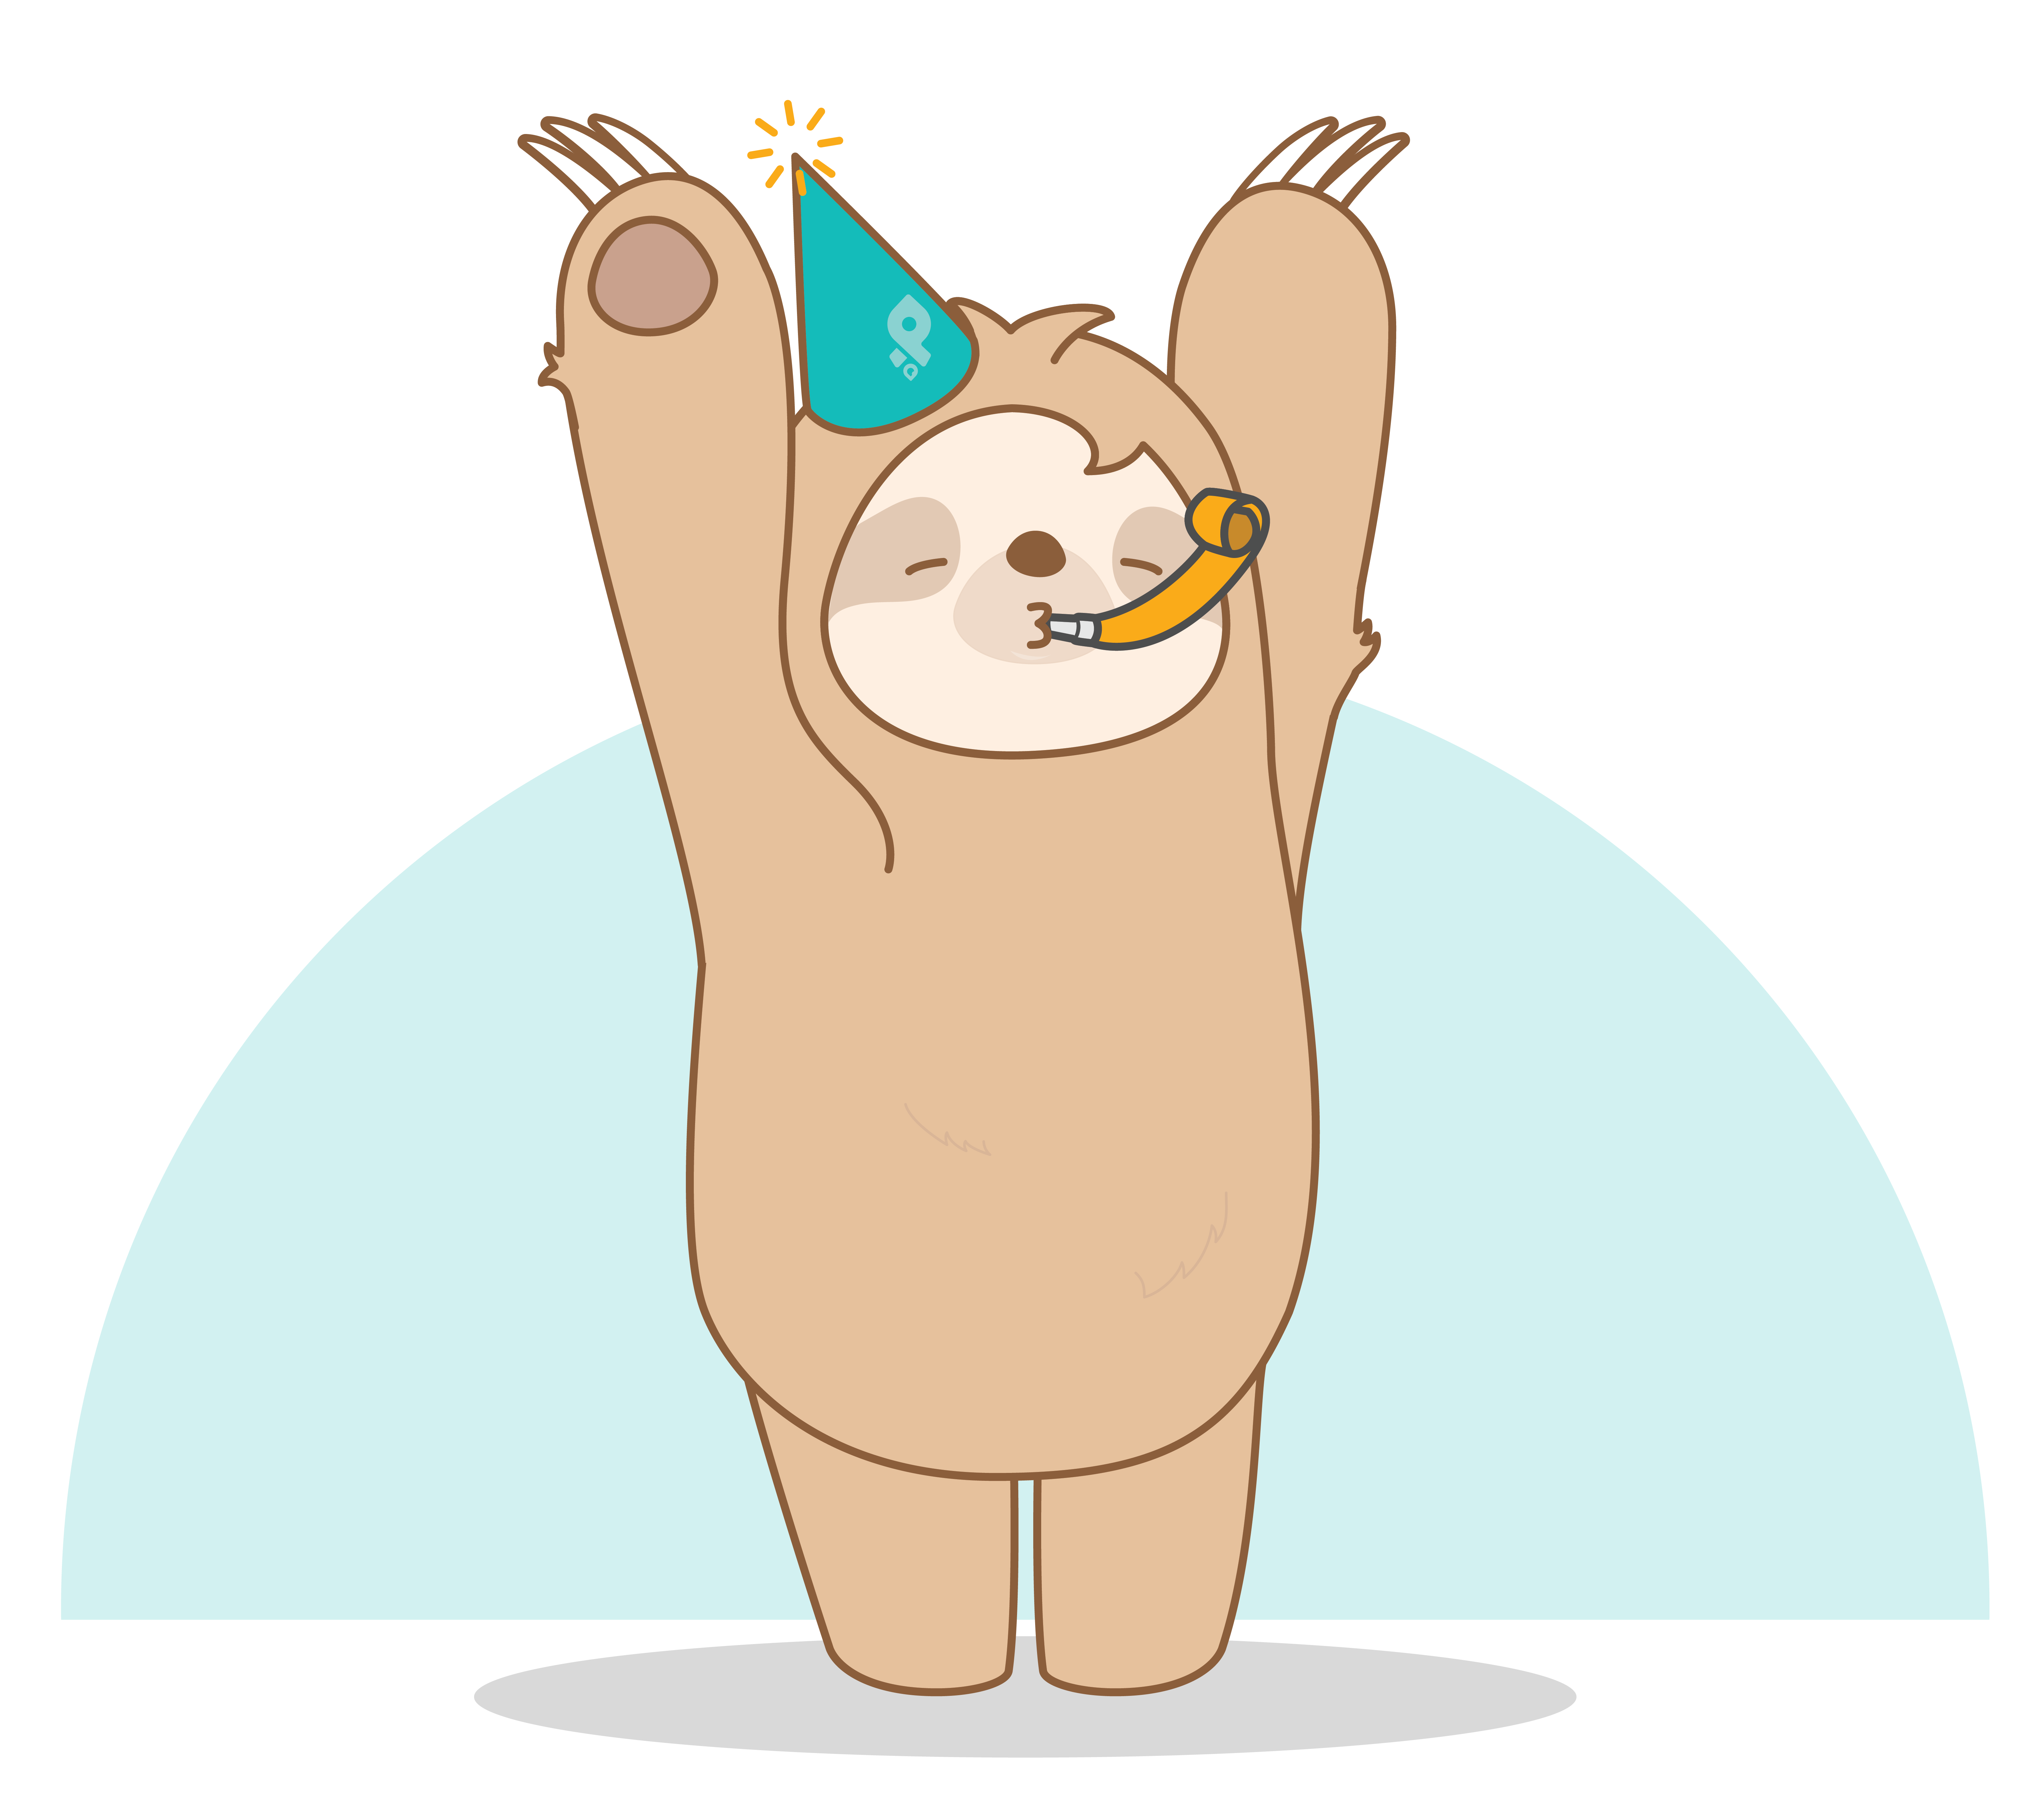 Dash the sloth, who is Procurify's mascot is celebrating with a party hat and whistle